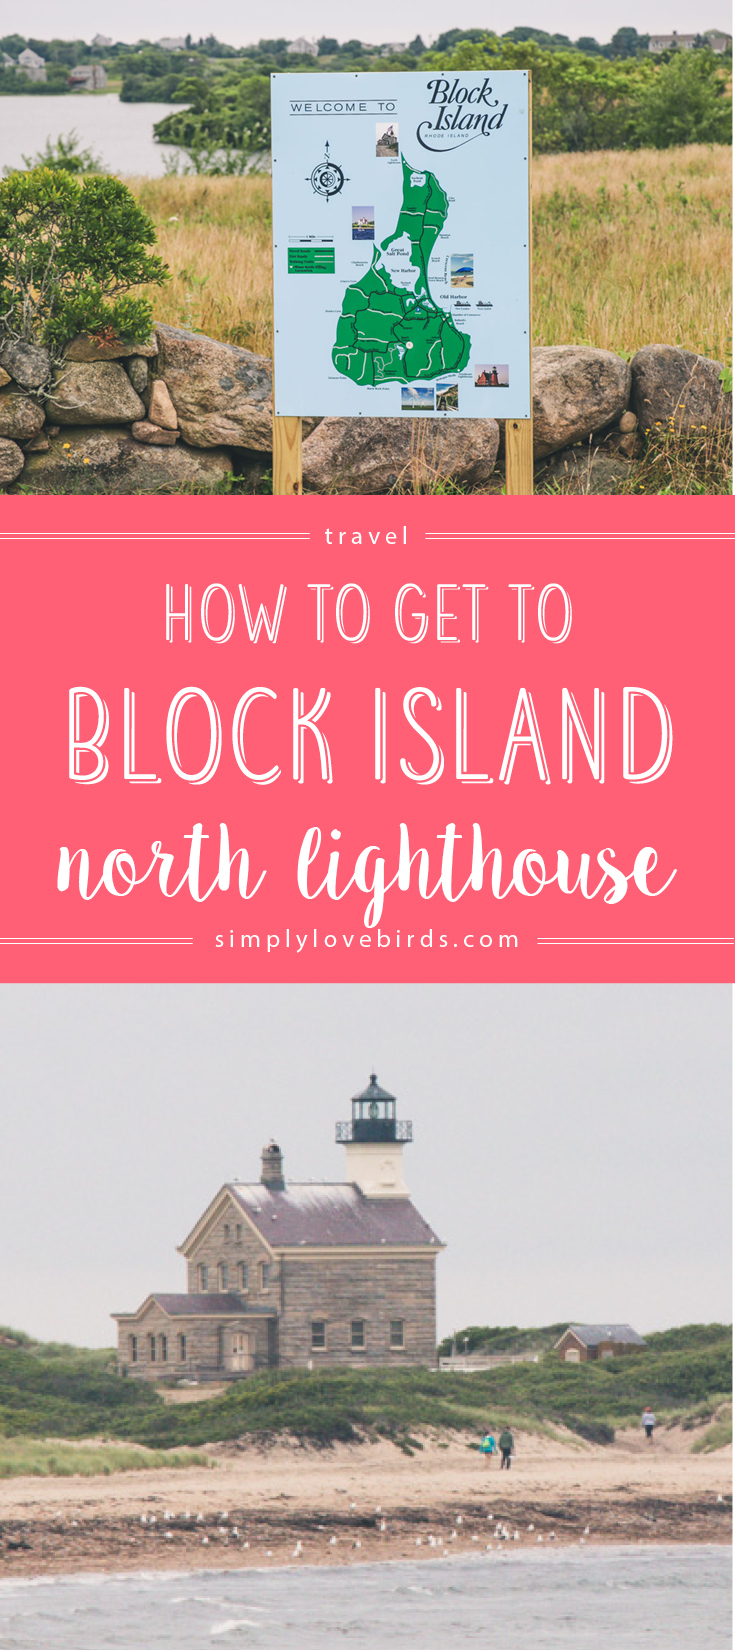 Directions on how to get to Block Island's north lighthouse at simplylovebirds.com